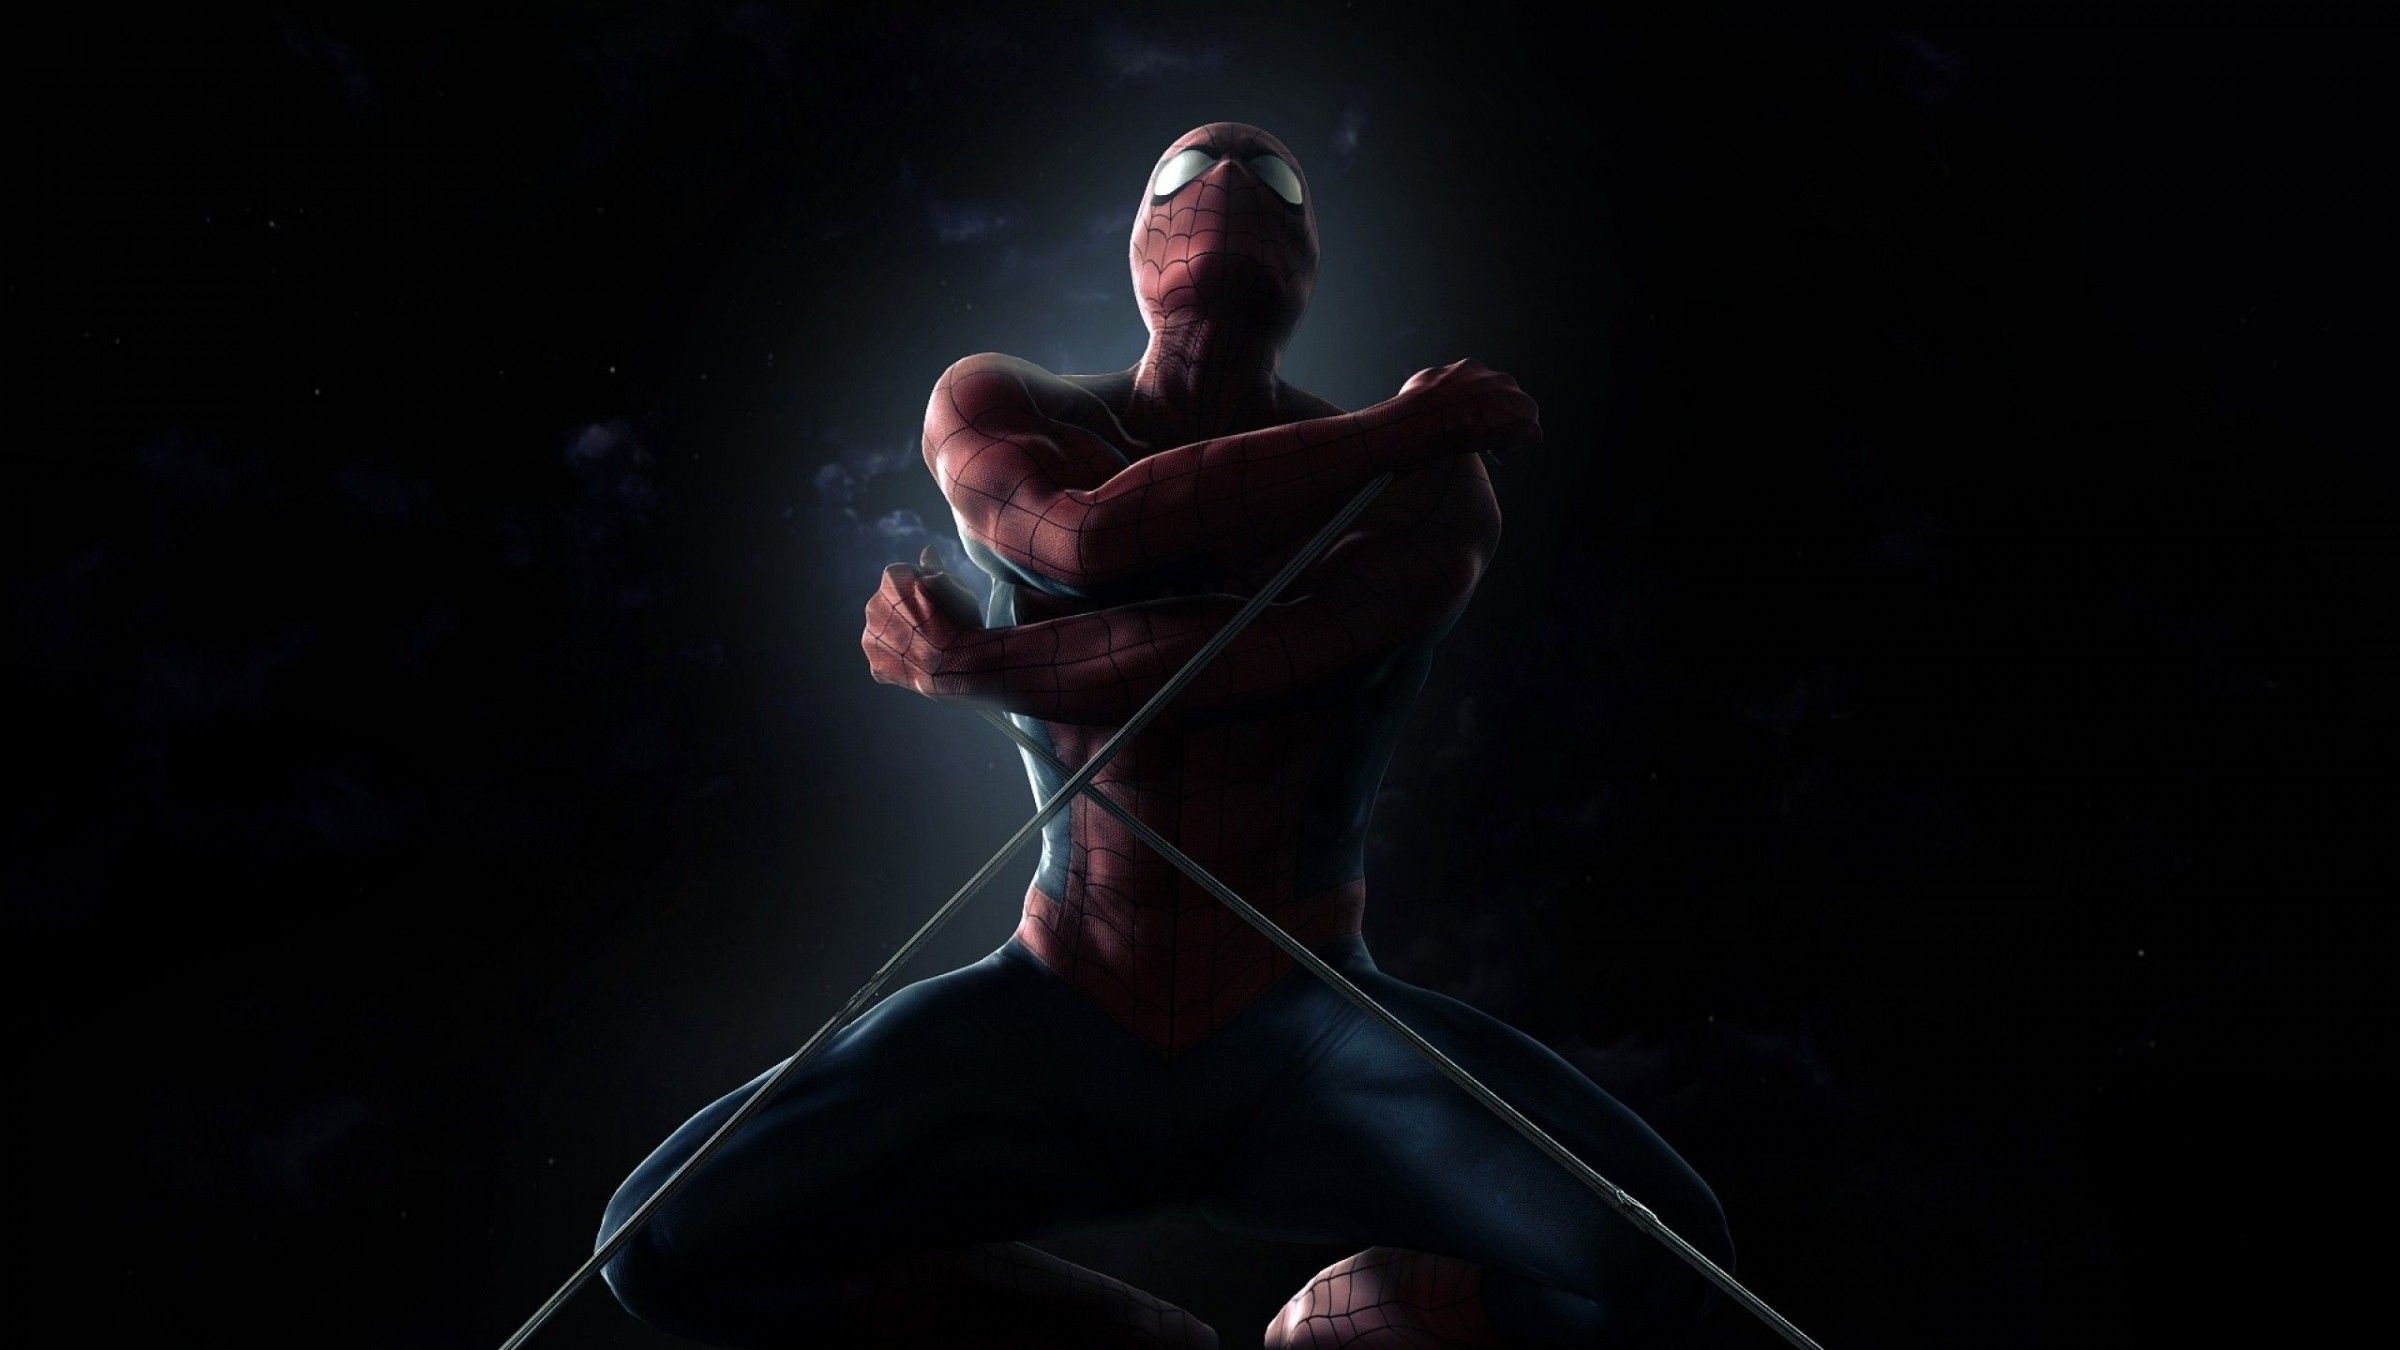 Amazing Spiderman Background 4k Hd Pictures 4 Superhero